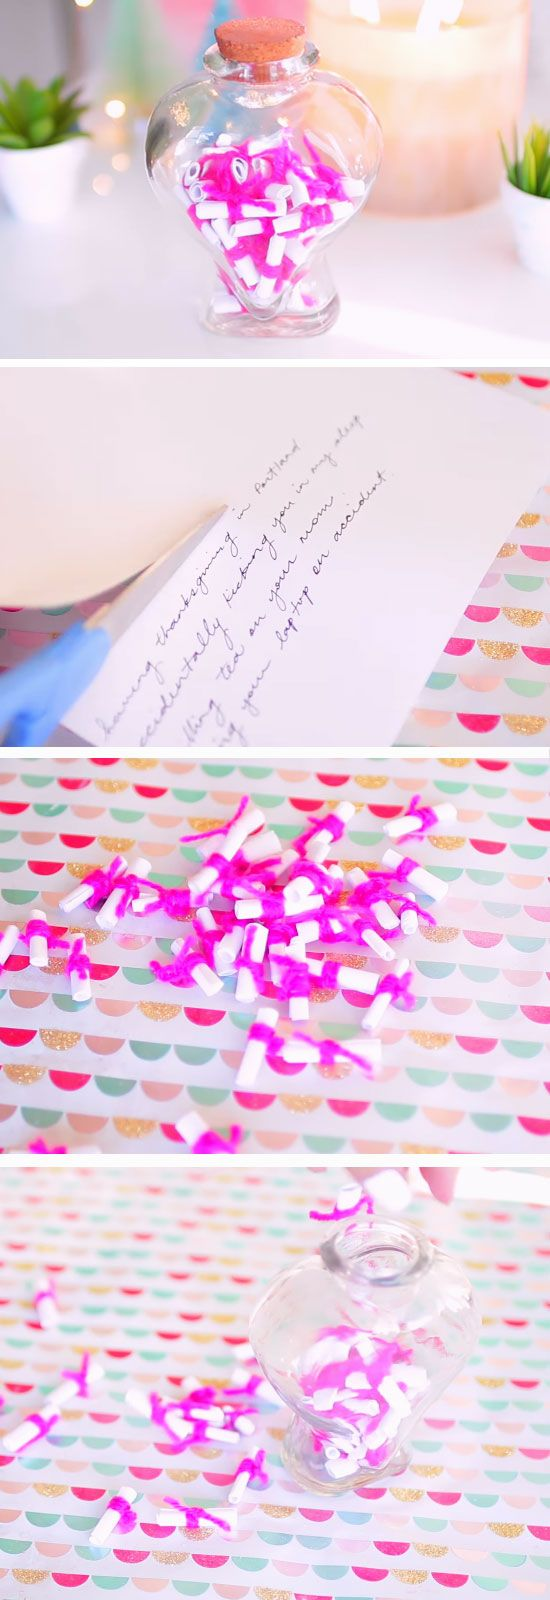 27 Last Minute DIY Christmas Gifts You Can Make in No Time! | DIY ...